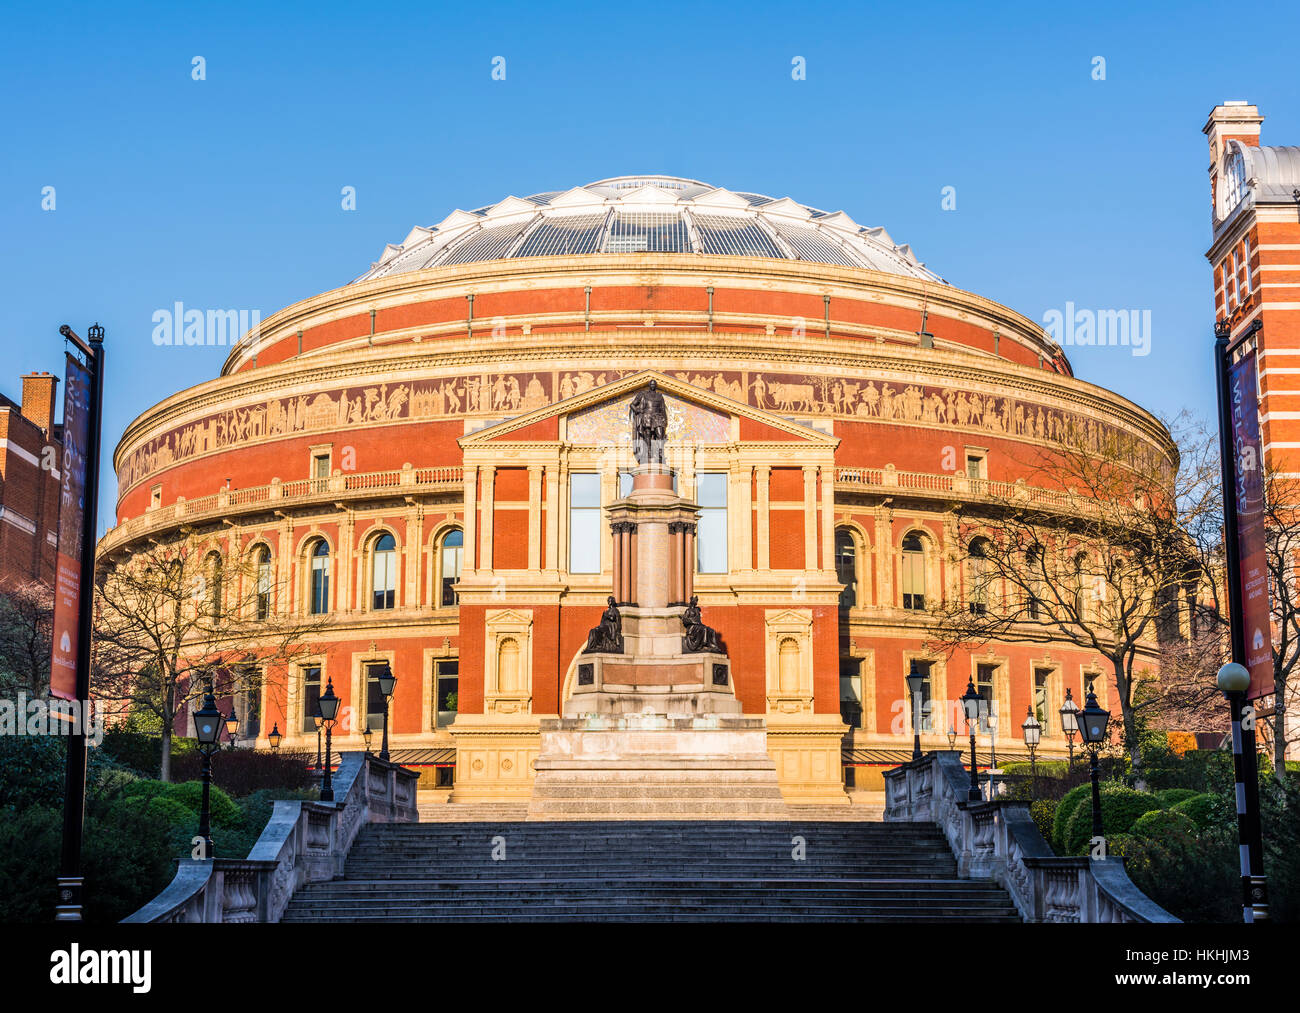 Winter sun on the wonderful Royal Albert Hall, London, UK - Stock Image